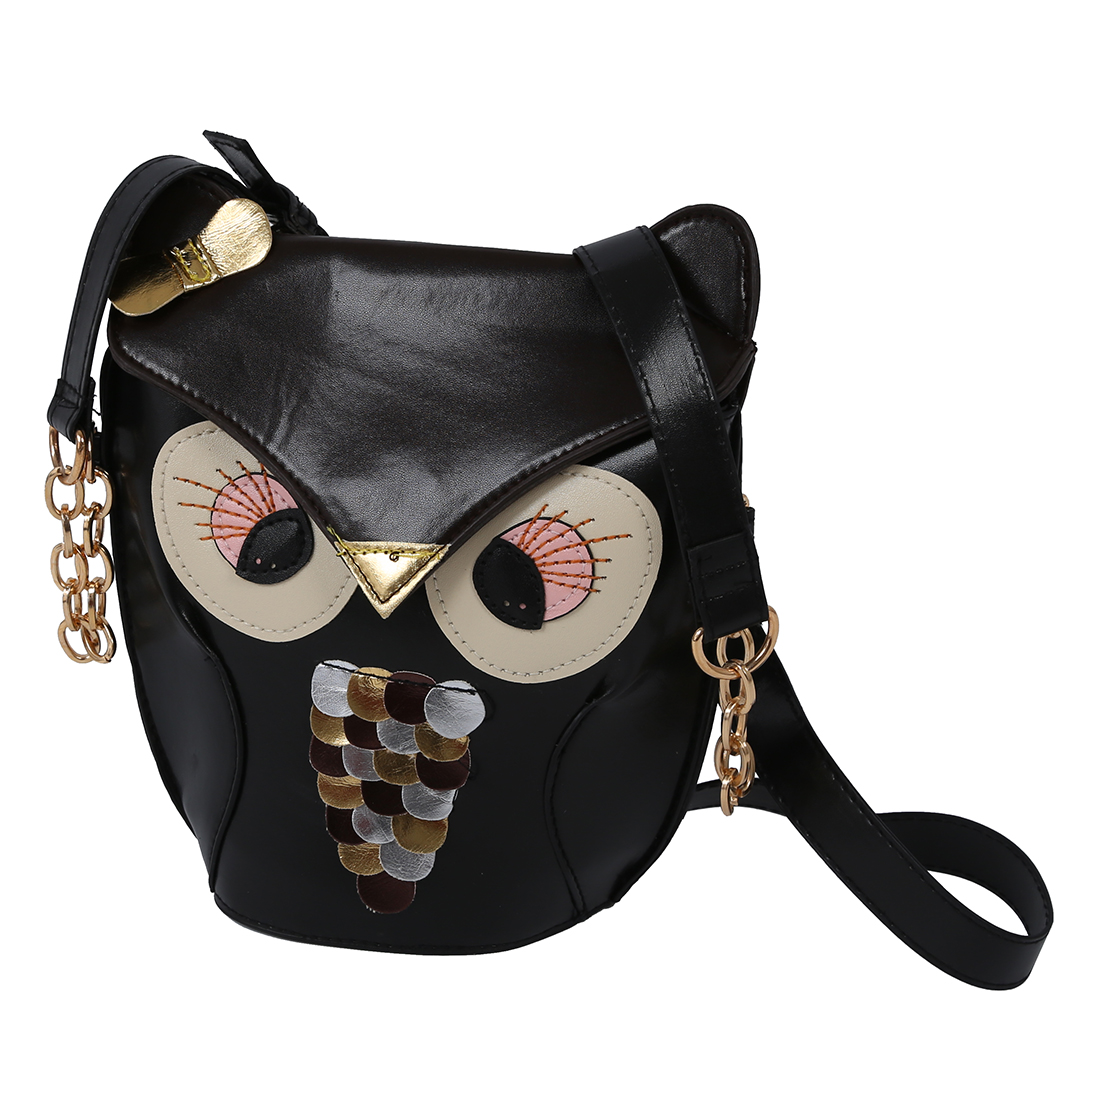 5pcs of Ladies Fashion Adjustable Owl Pattern Chain Shoulder Bag